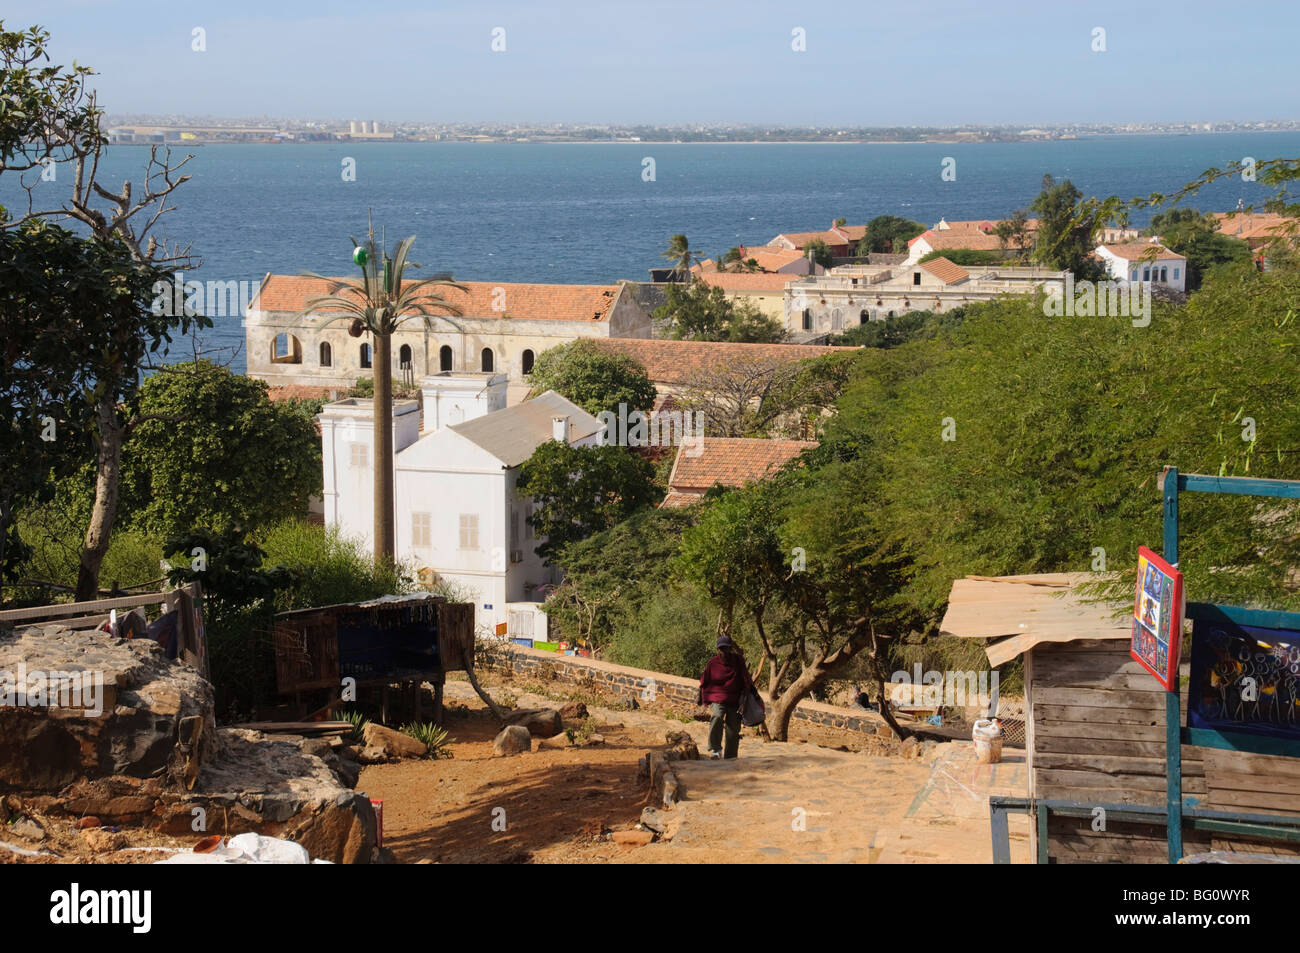 Goree Island famous for its role in slavery, view over to Dakar, Senegal, West Africa, Africa - Stock Image